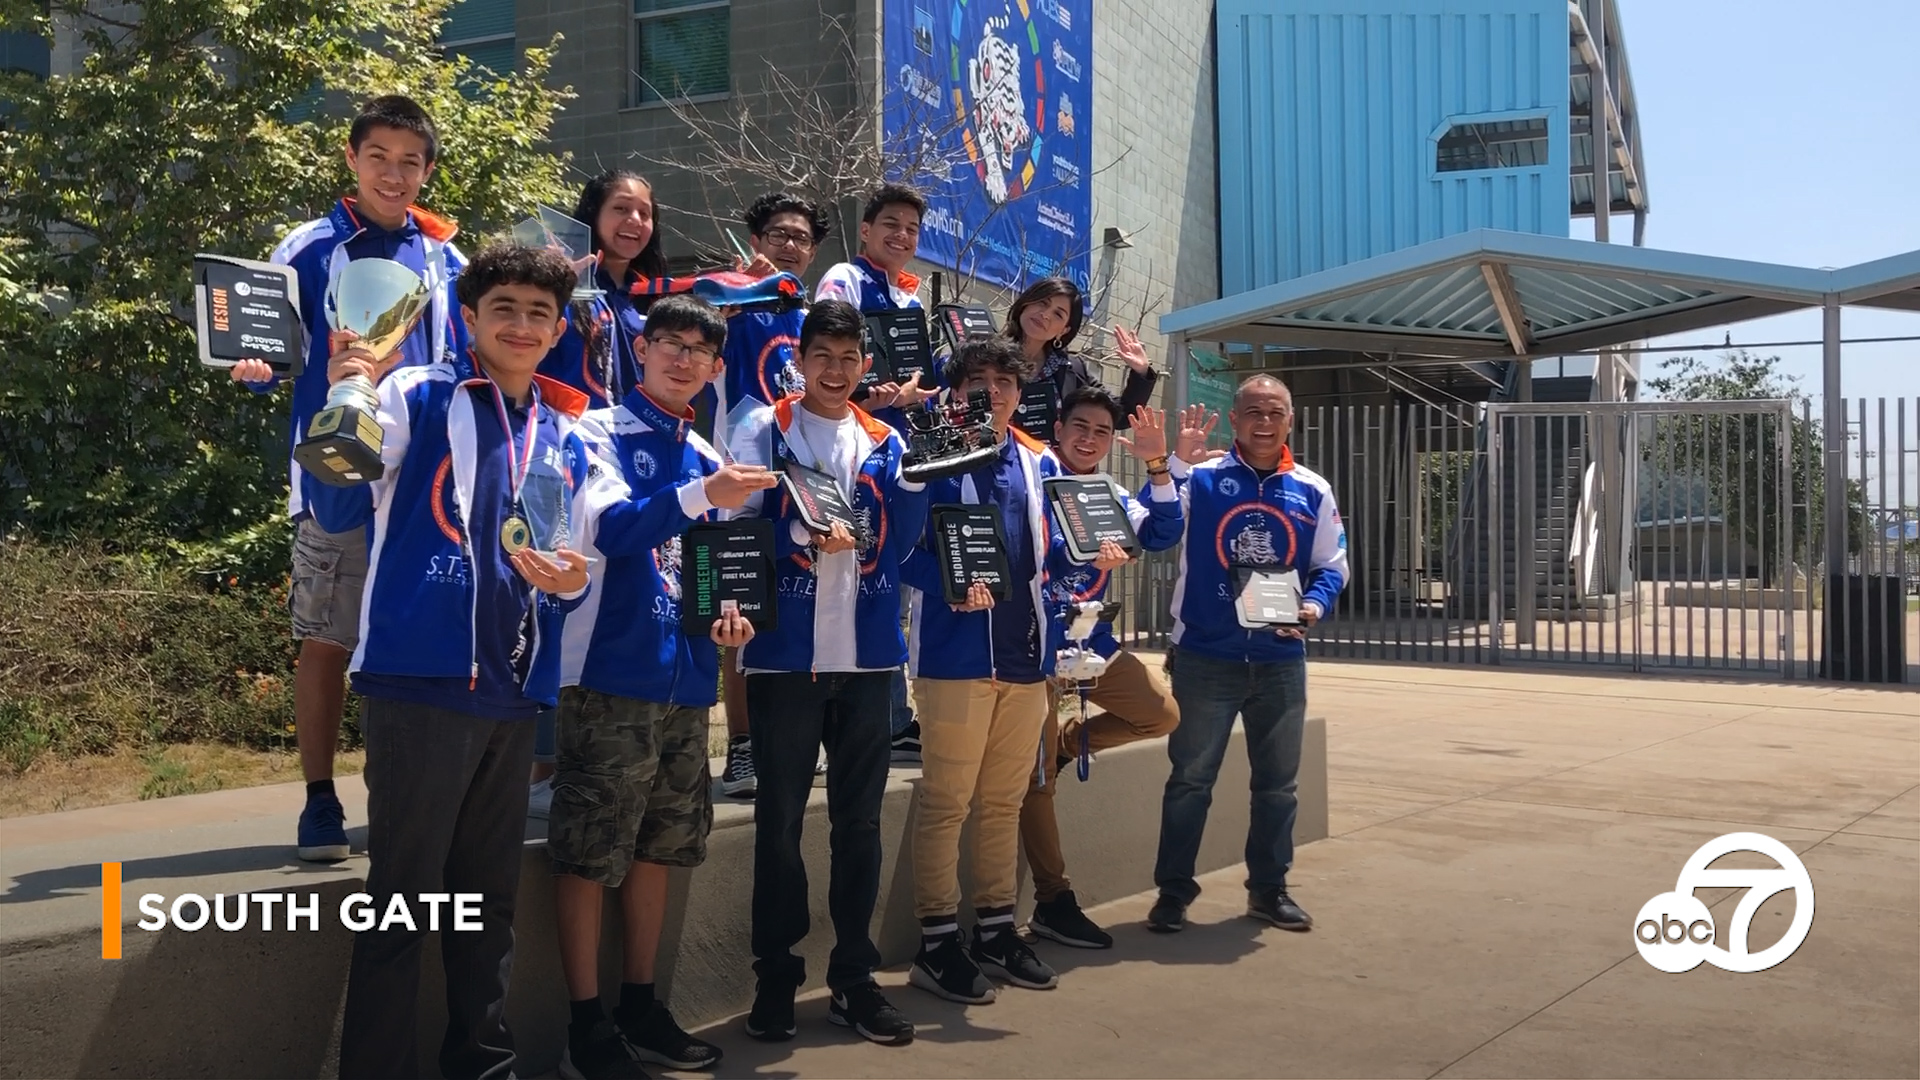 WORLD CHAMPS: South Gate students win automotive competition